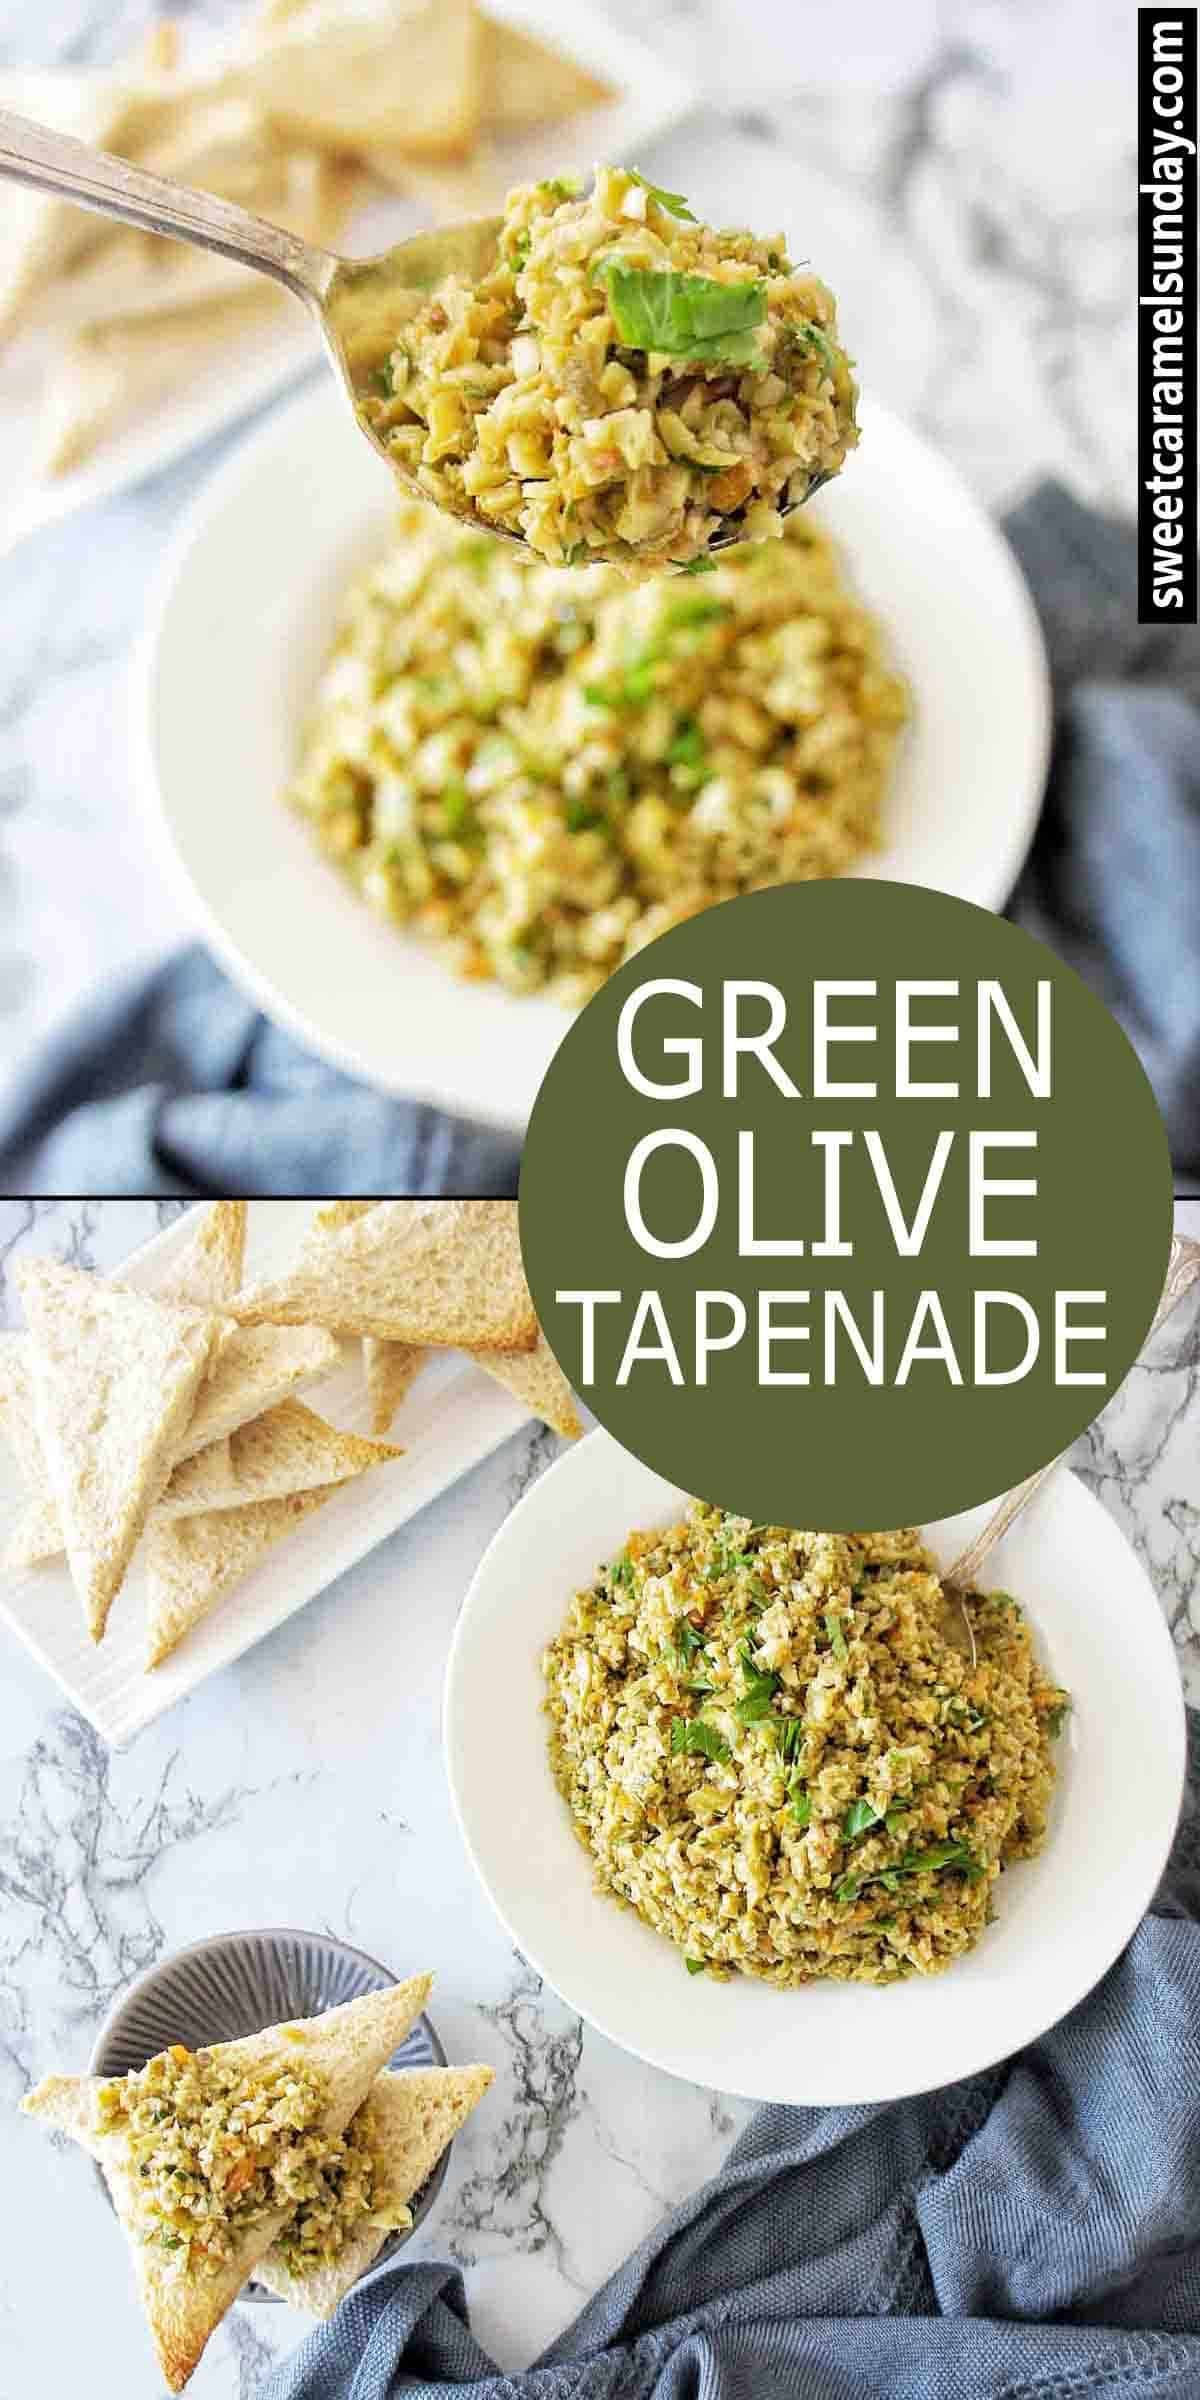 Green Olive Tapenade with text overlay